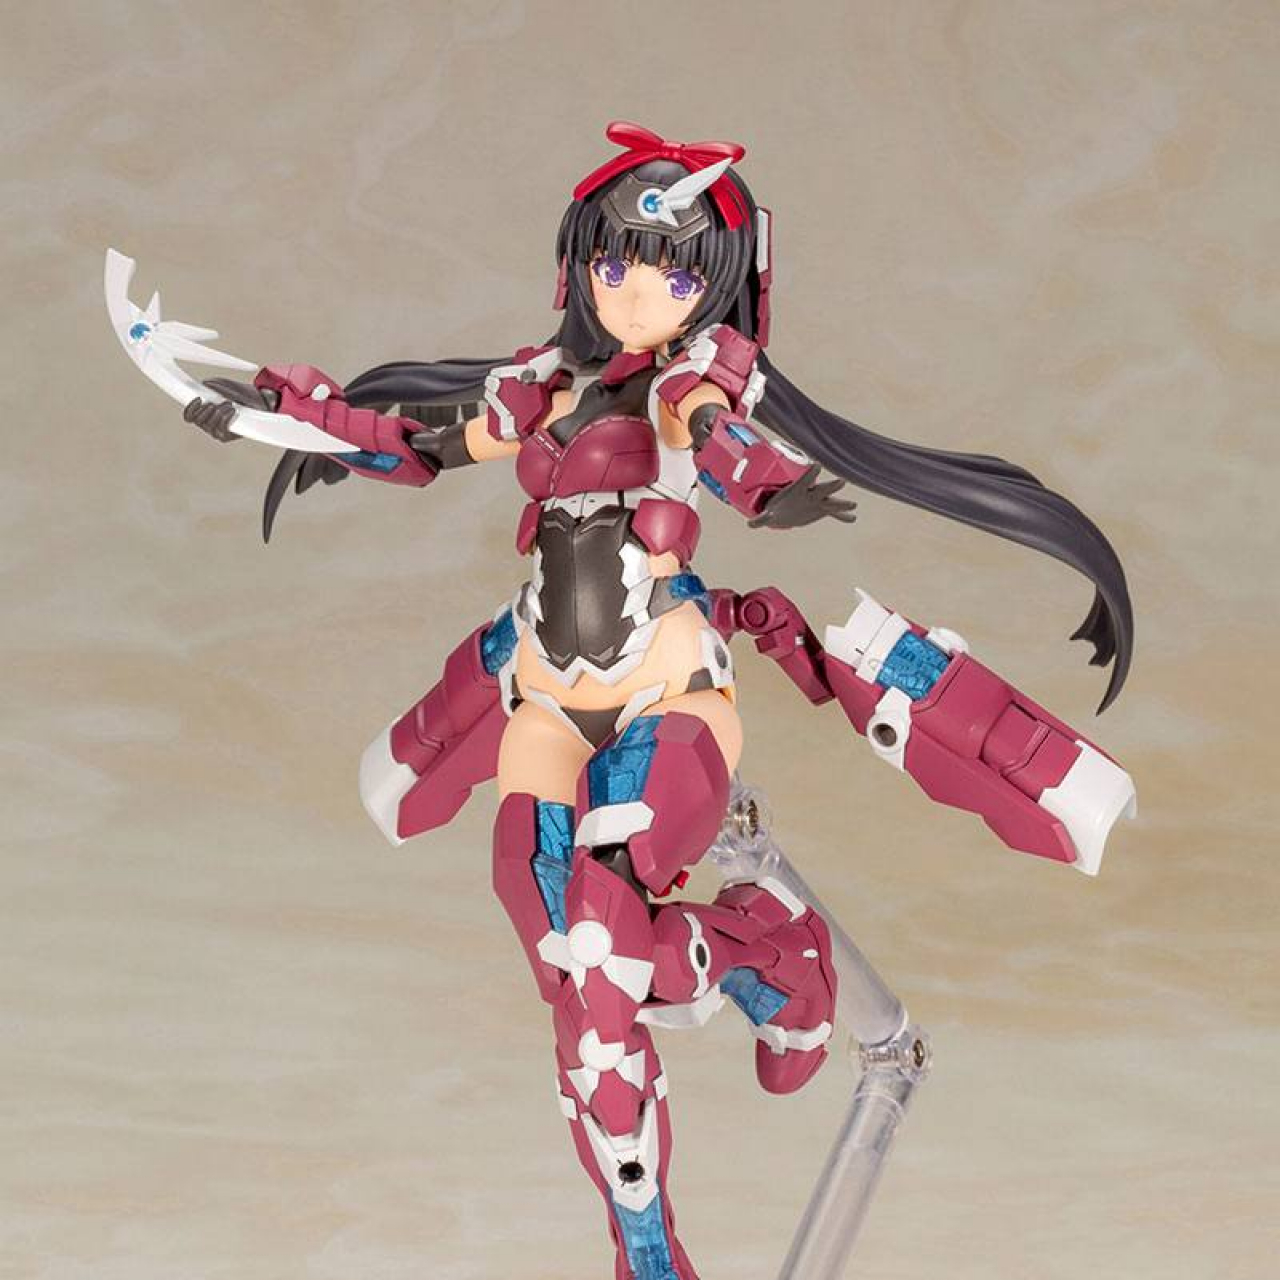 Frame Arms Girl Plastic Model Kit Magatsuki 16 cm